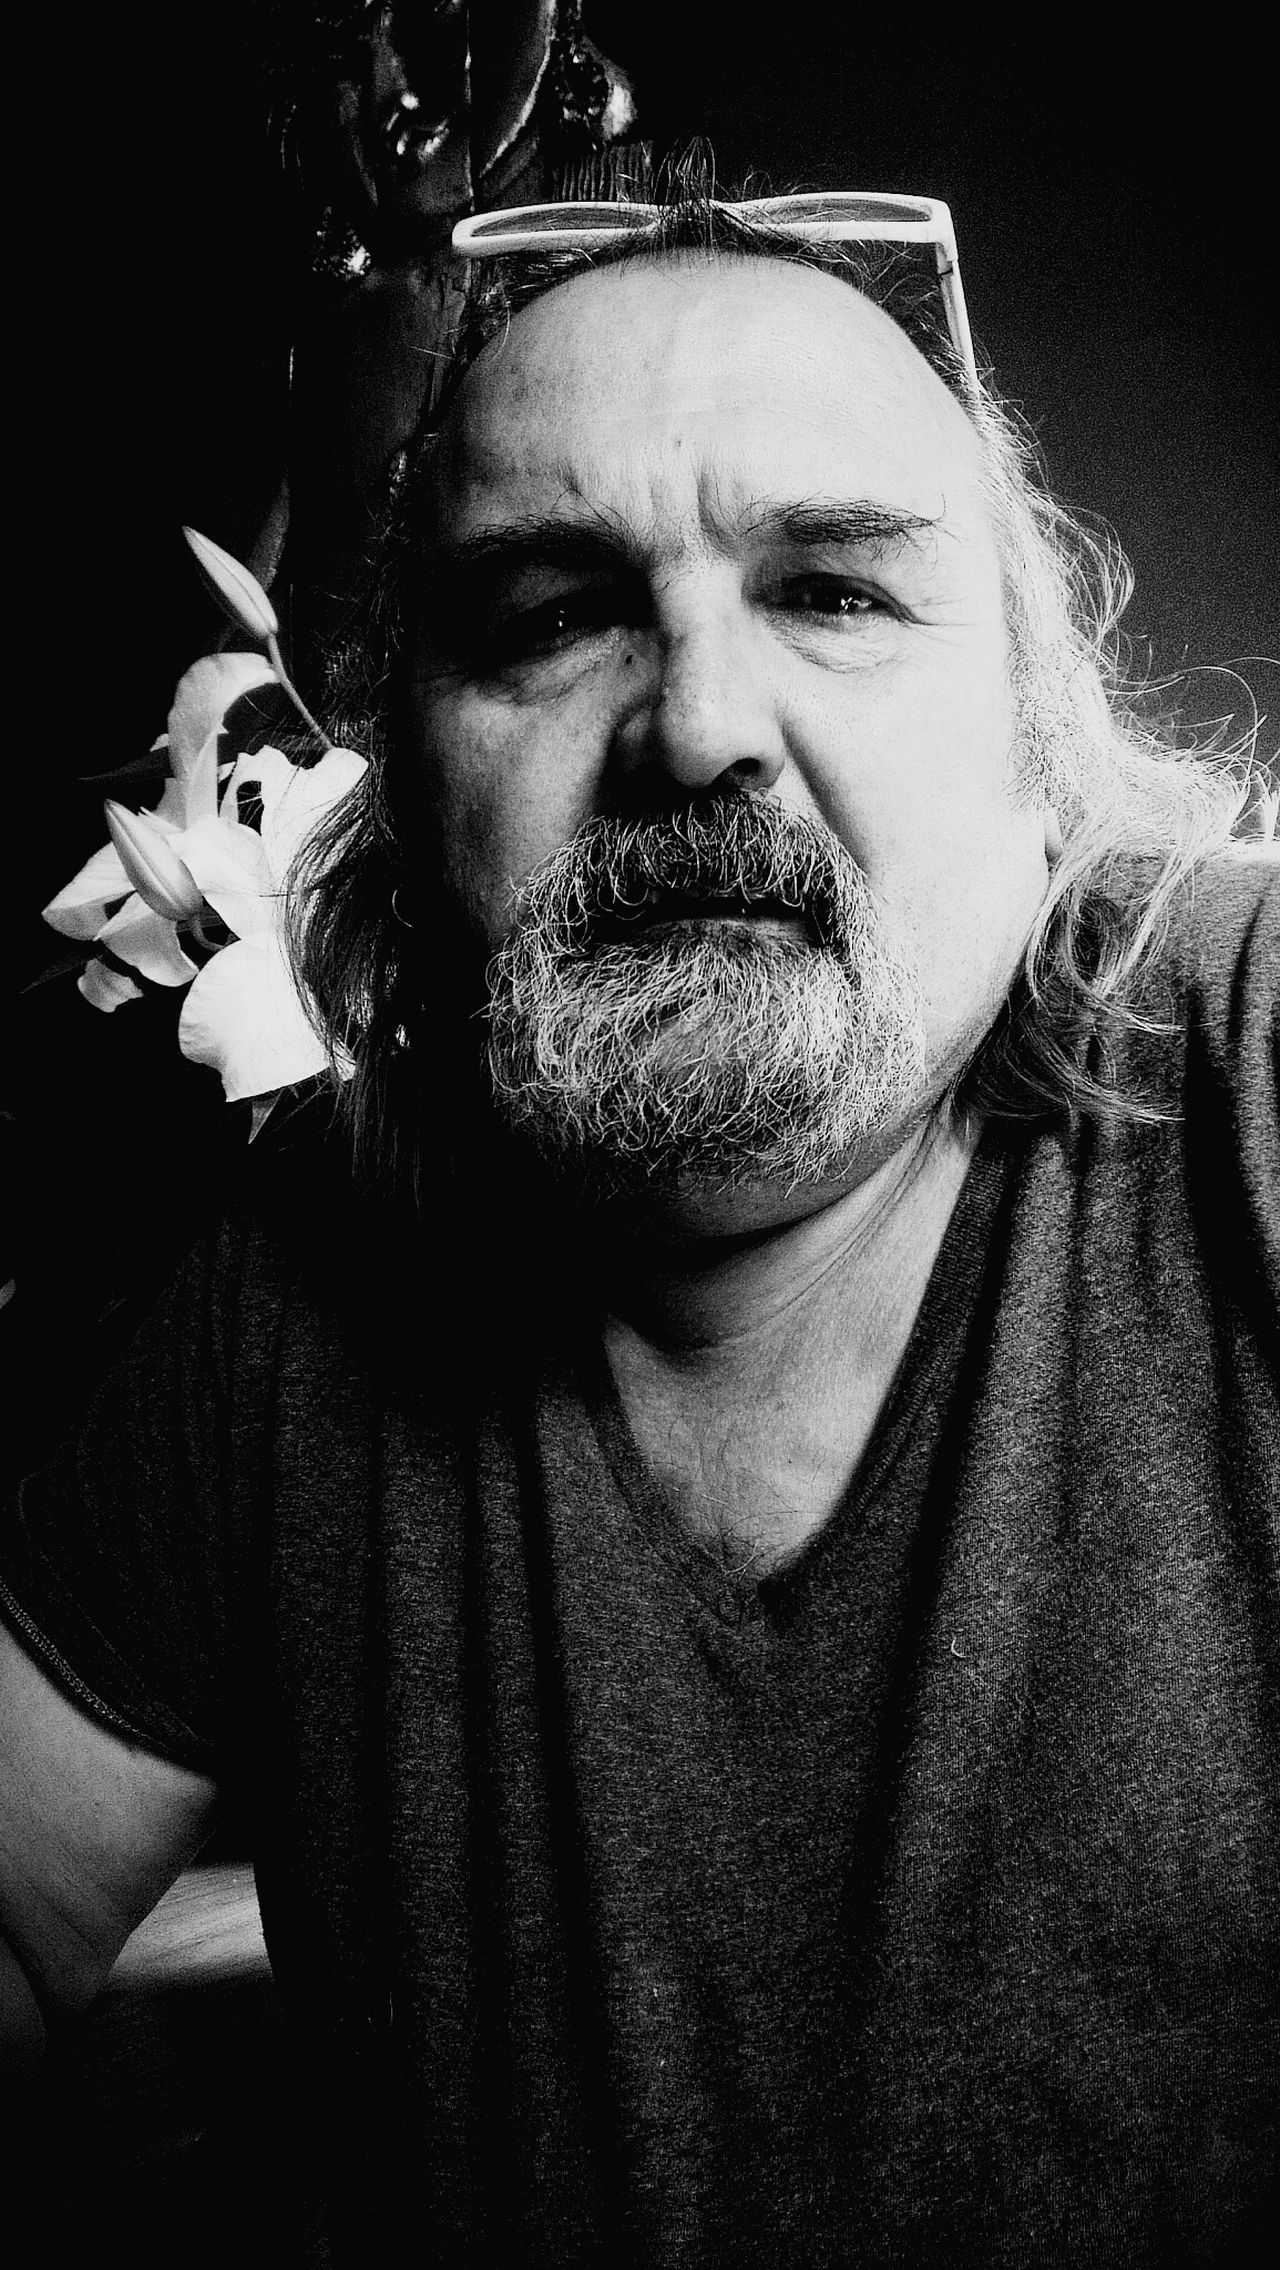 Looking At Camera Beard One Person Portrait Real People Indoors  Only Men Day Human Body Part Shadows & Lights Flower Men And Flowers Monochrome Black & White